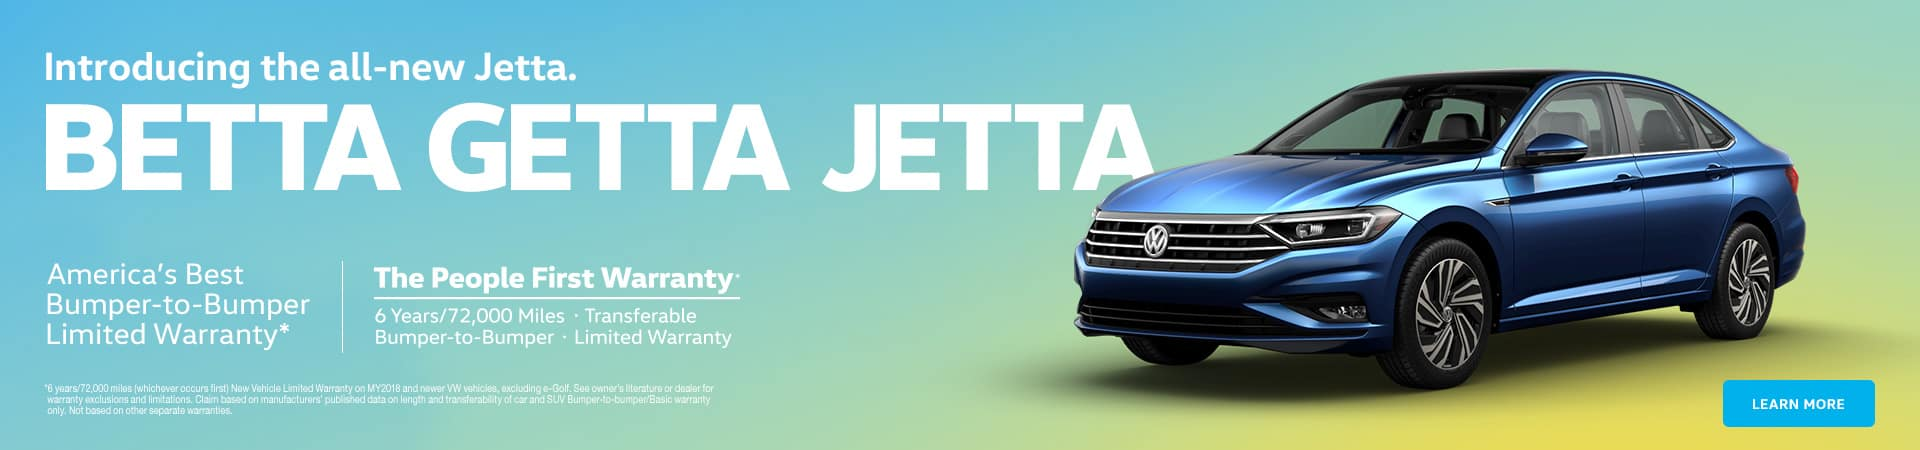 Introducing New Jetta